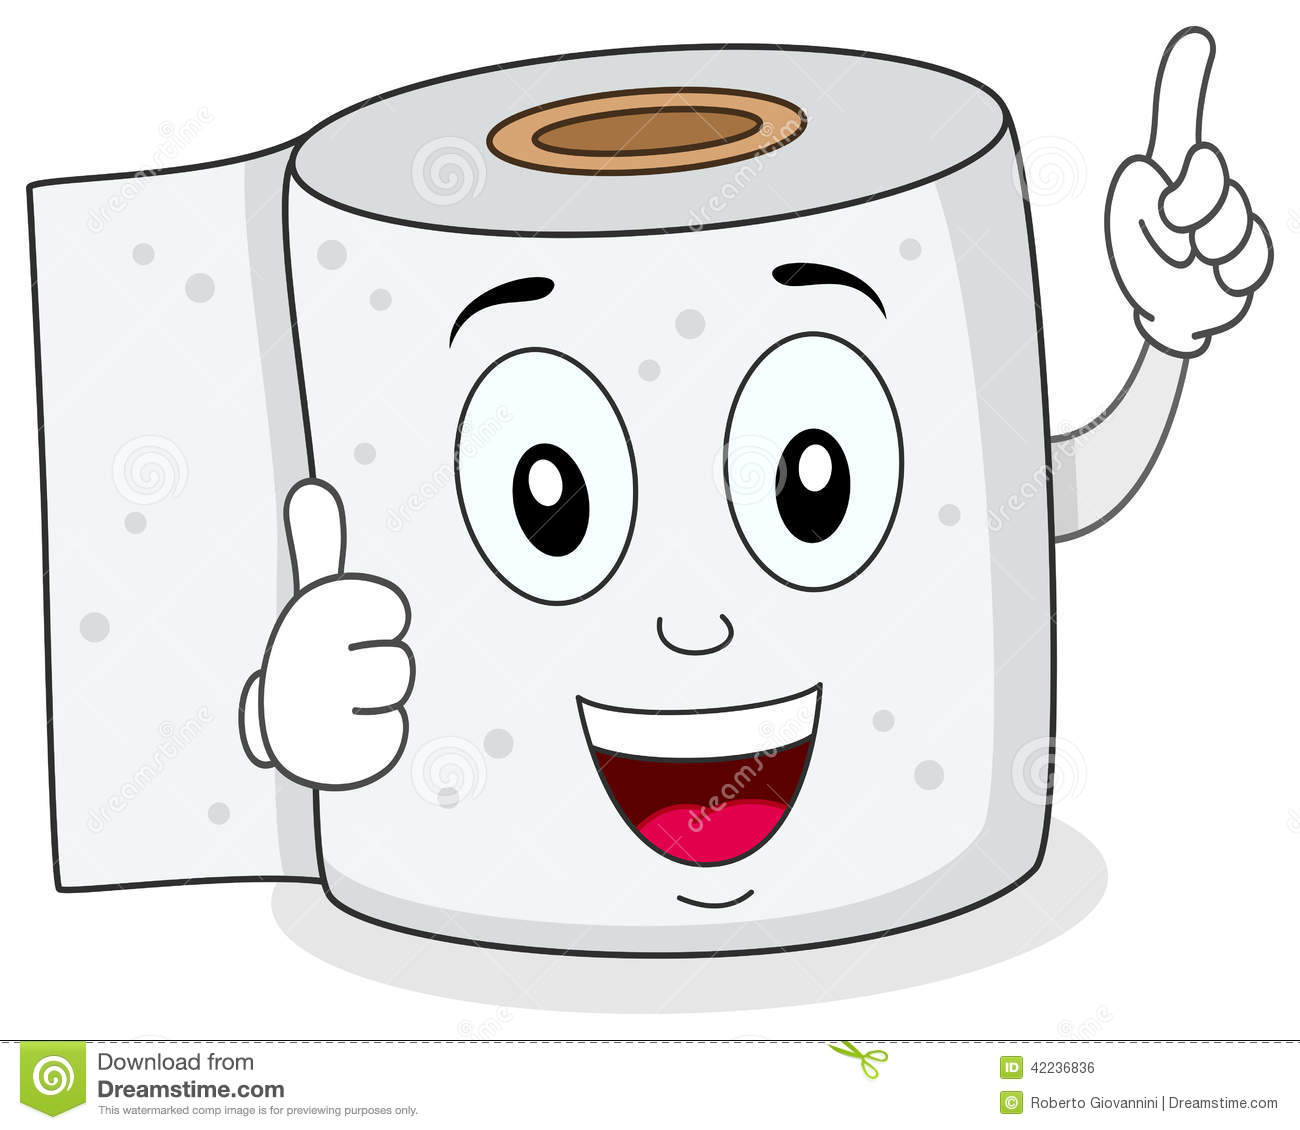 Cheerful Toilet Paper Smiling Character -Cheerful Toilet Paper Smiling Character Stock Vector Image 42236836-4